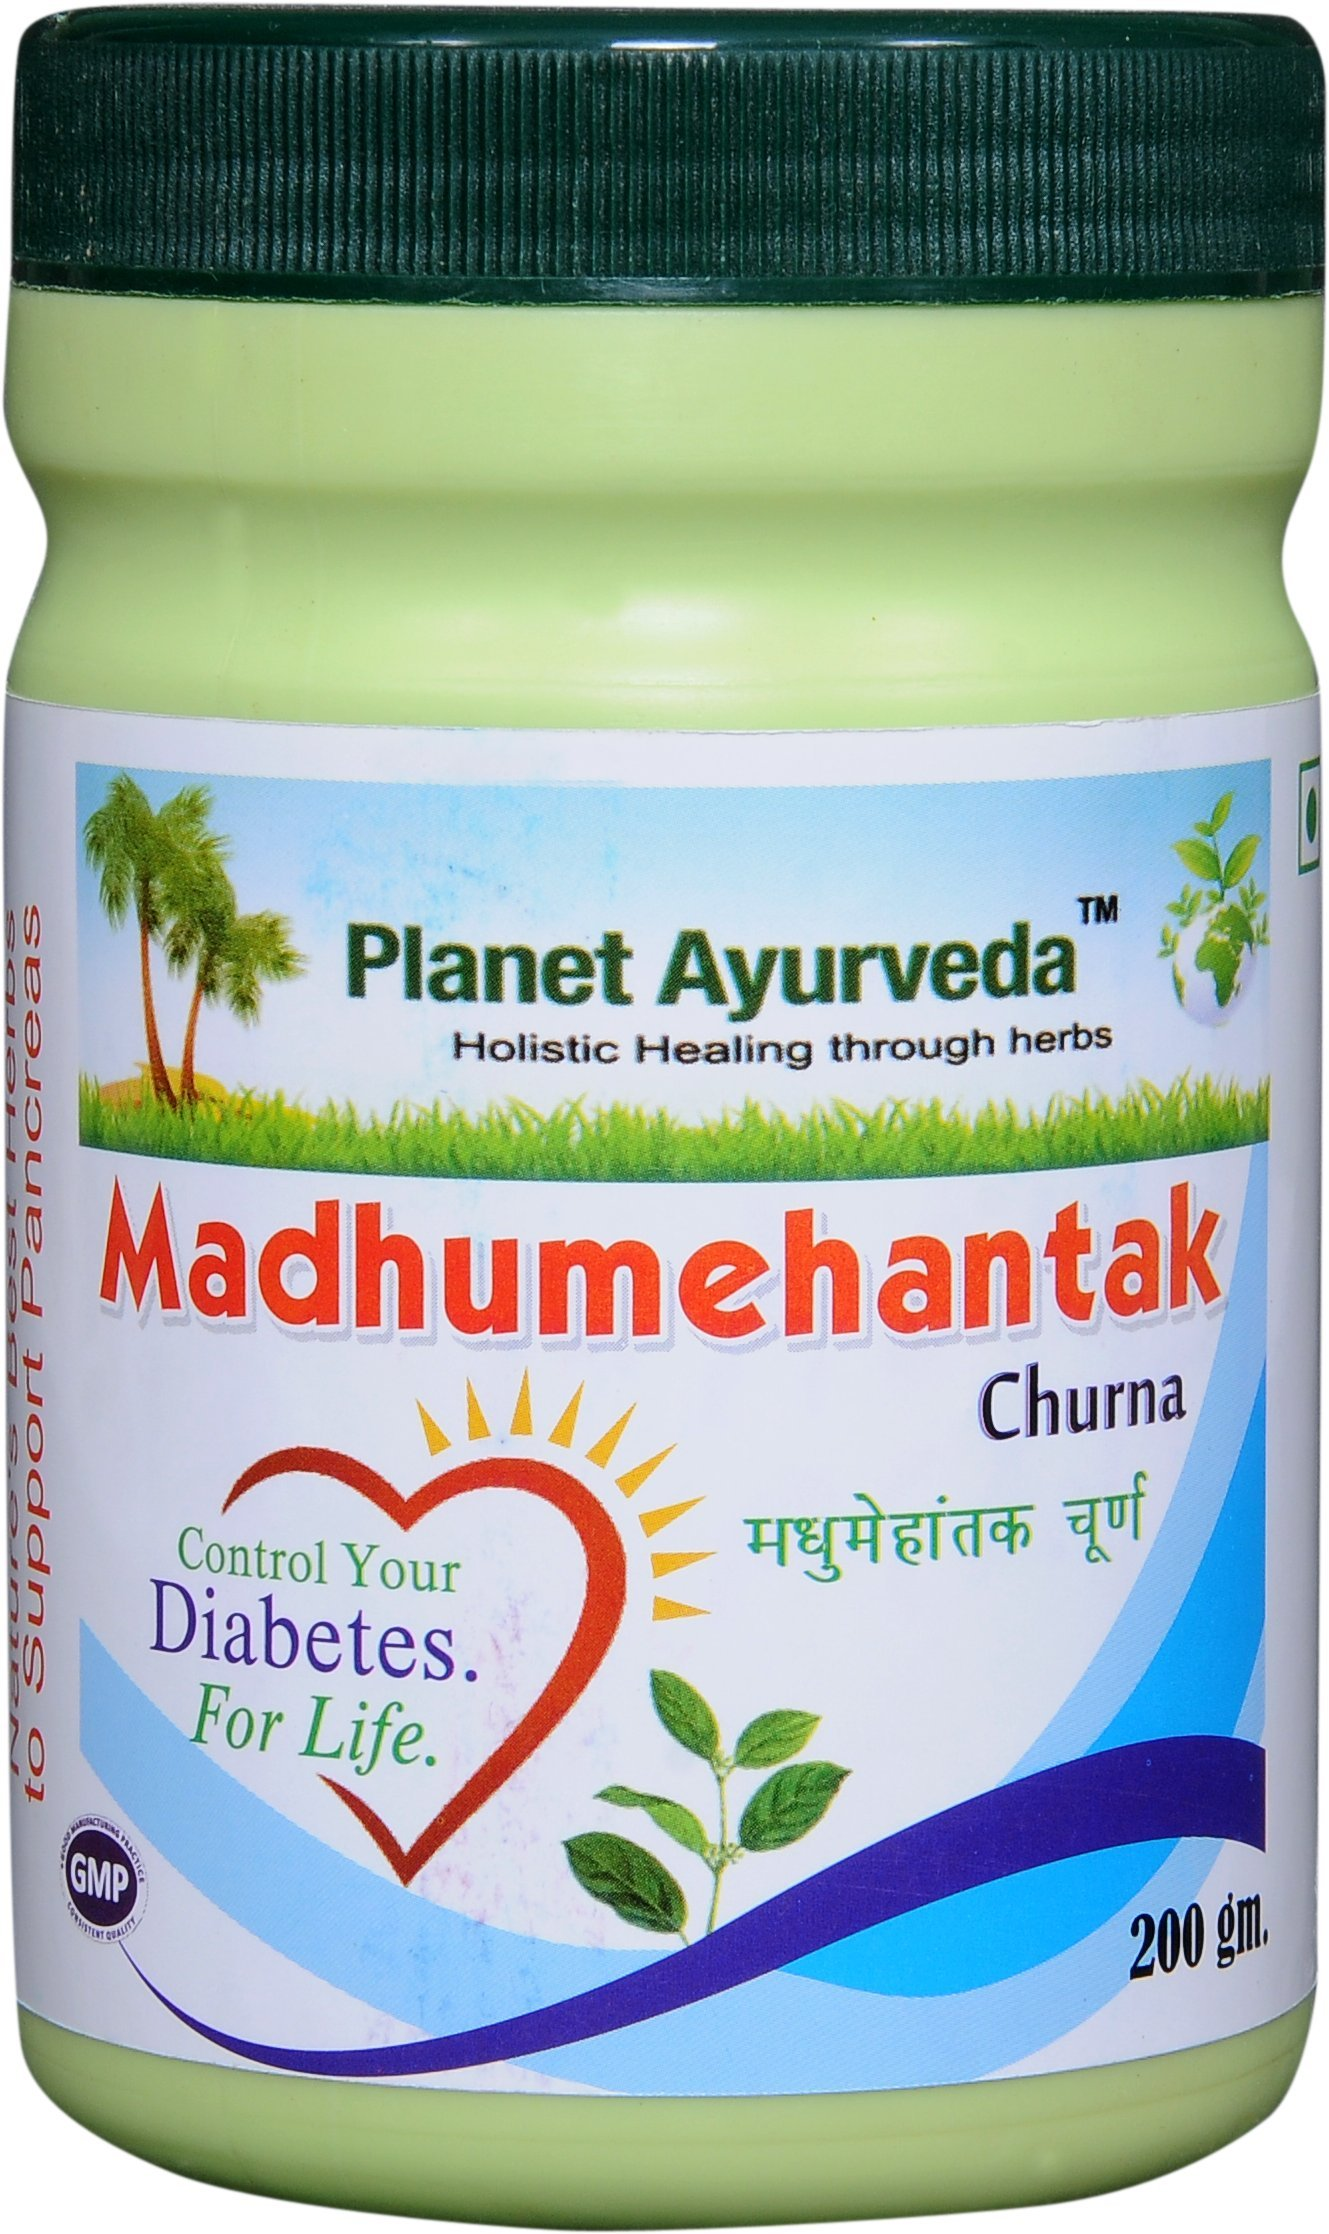 Planet Ayurveda Madhumehantak Churna, 200 Grams; 2 Jars by Planet Ayurveda